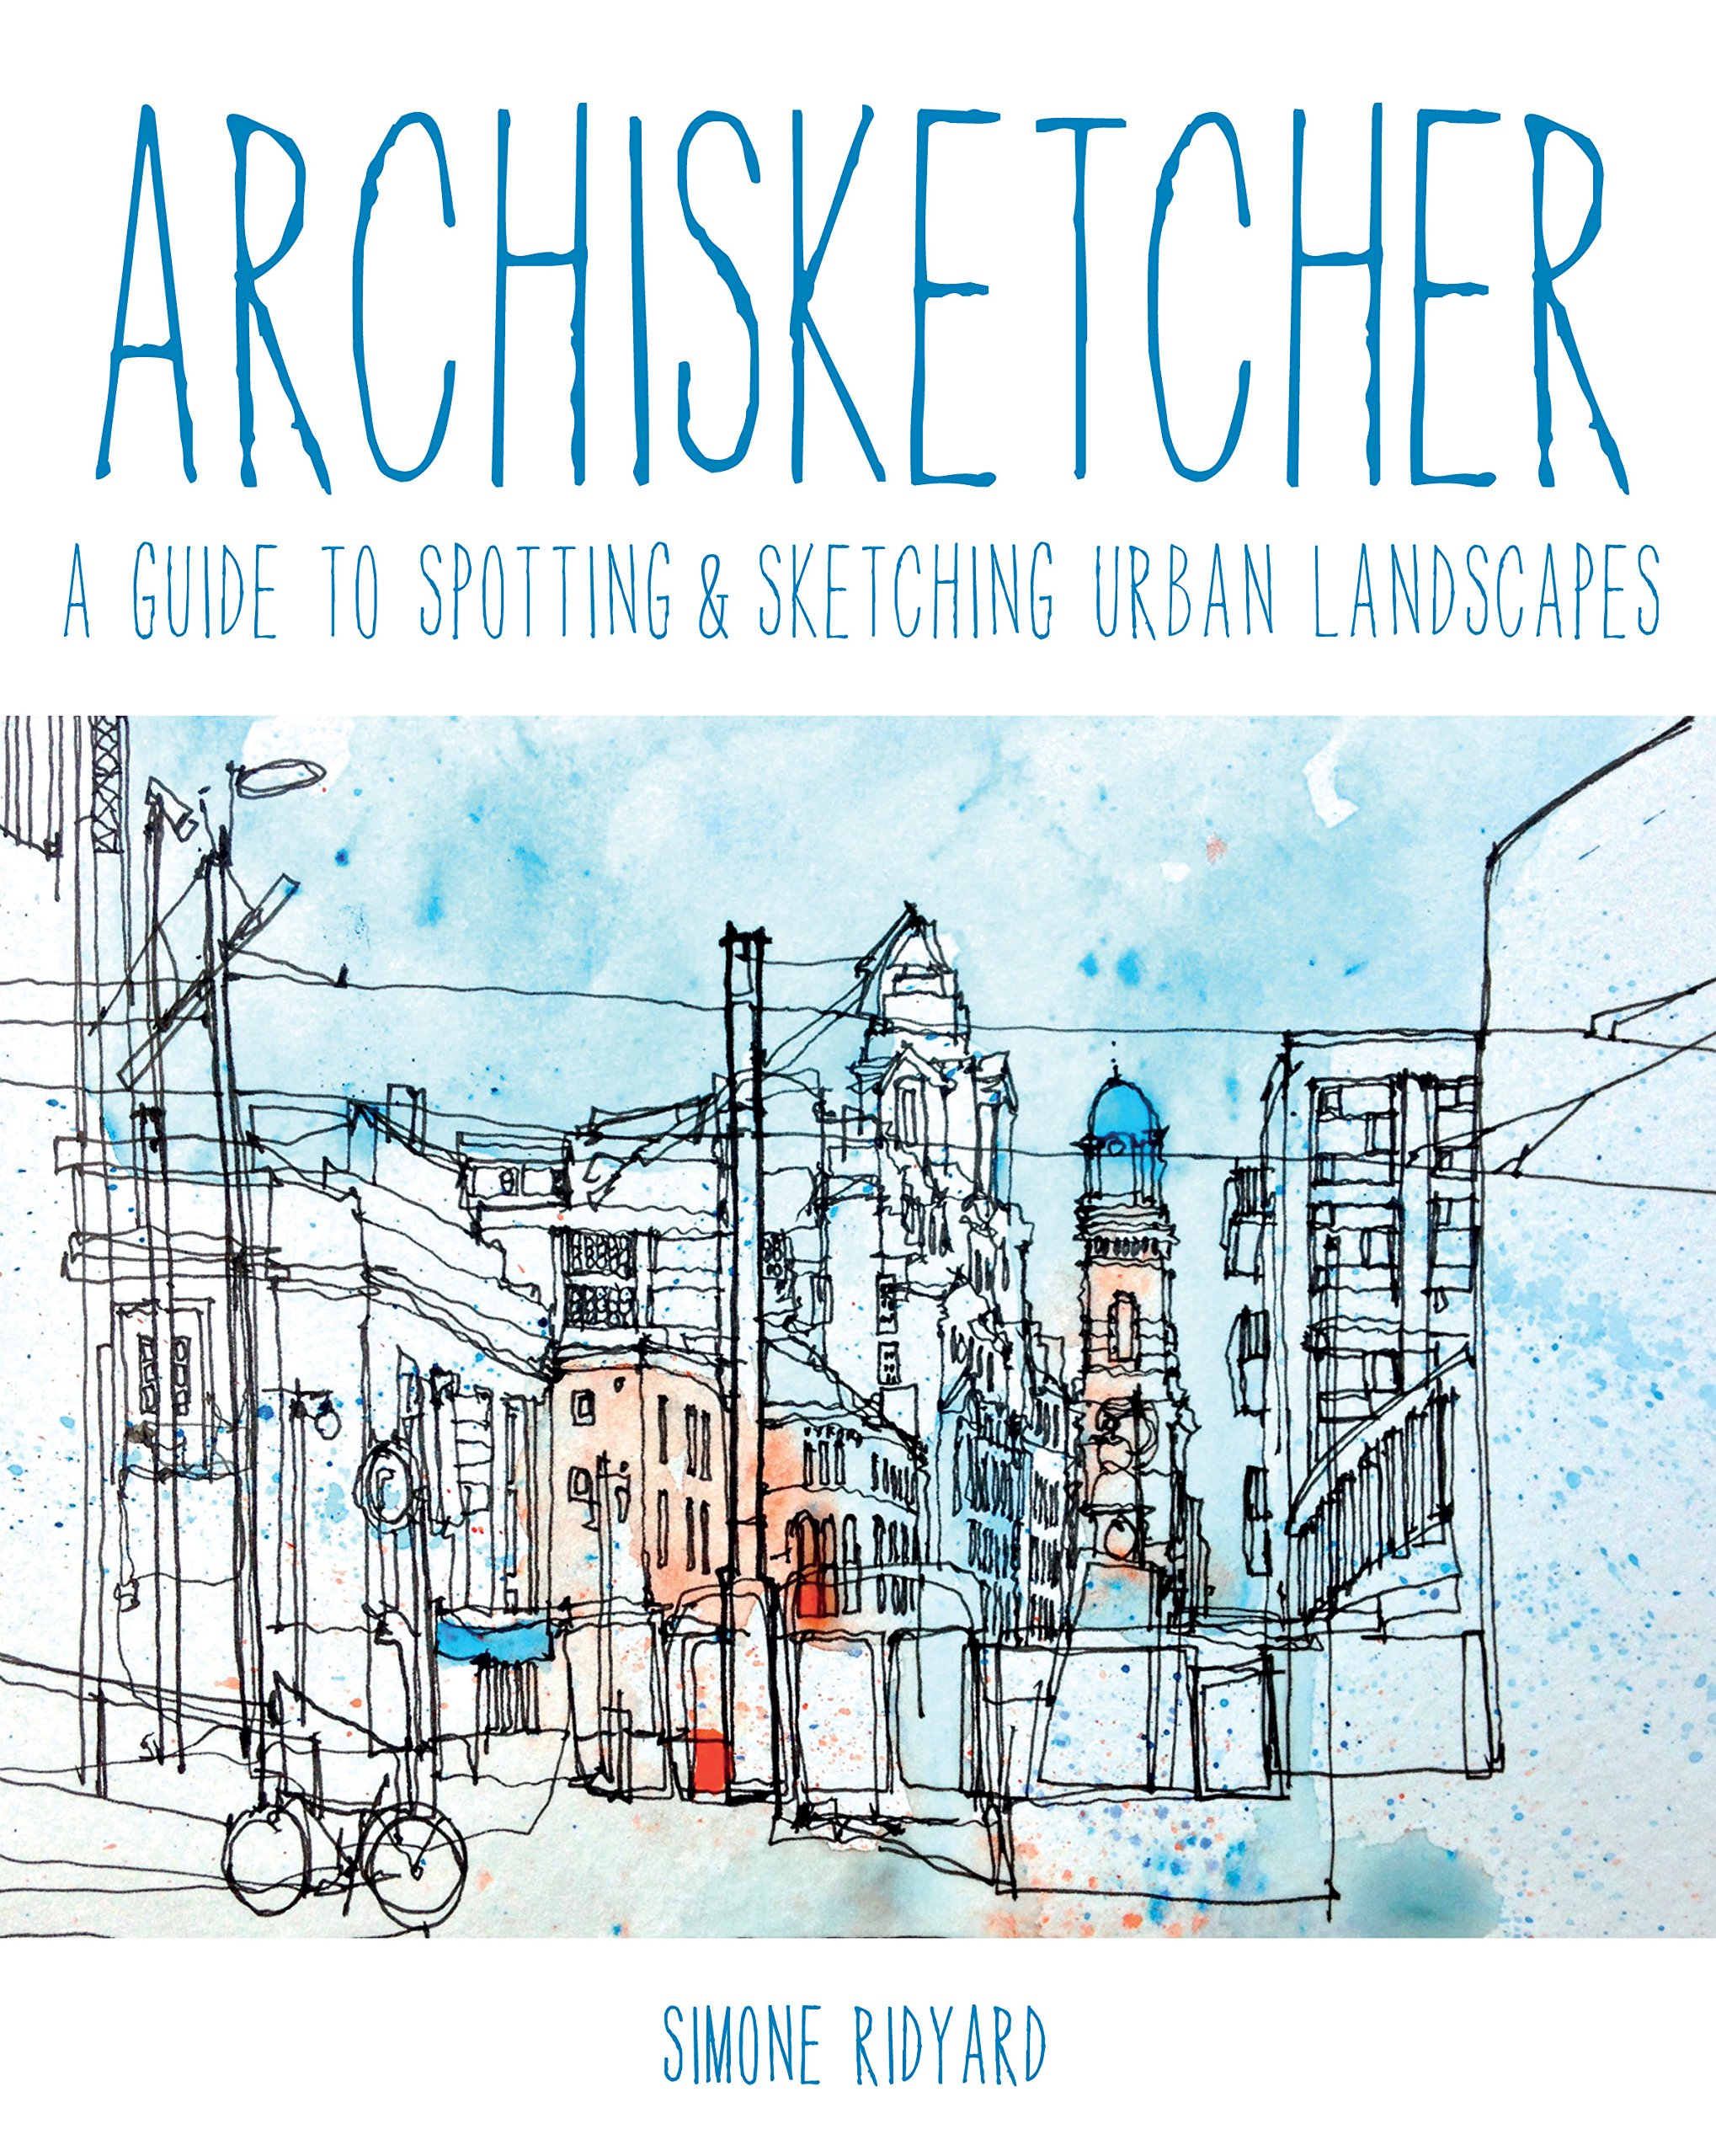 Download Archisketcher: A Guide to Spotting & Sketching Urban Landscapes PDF